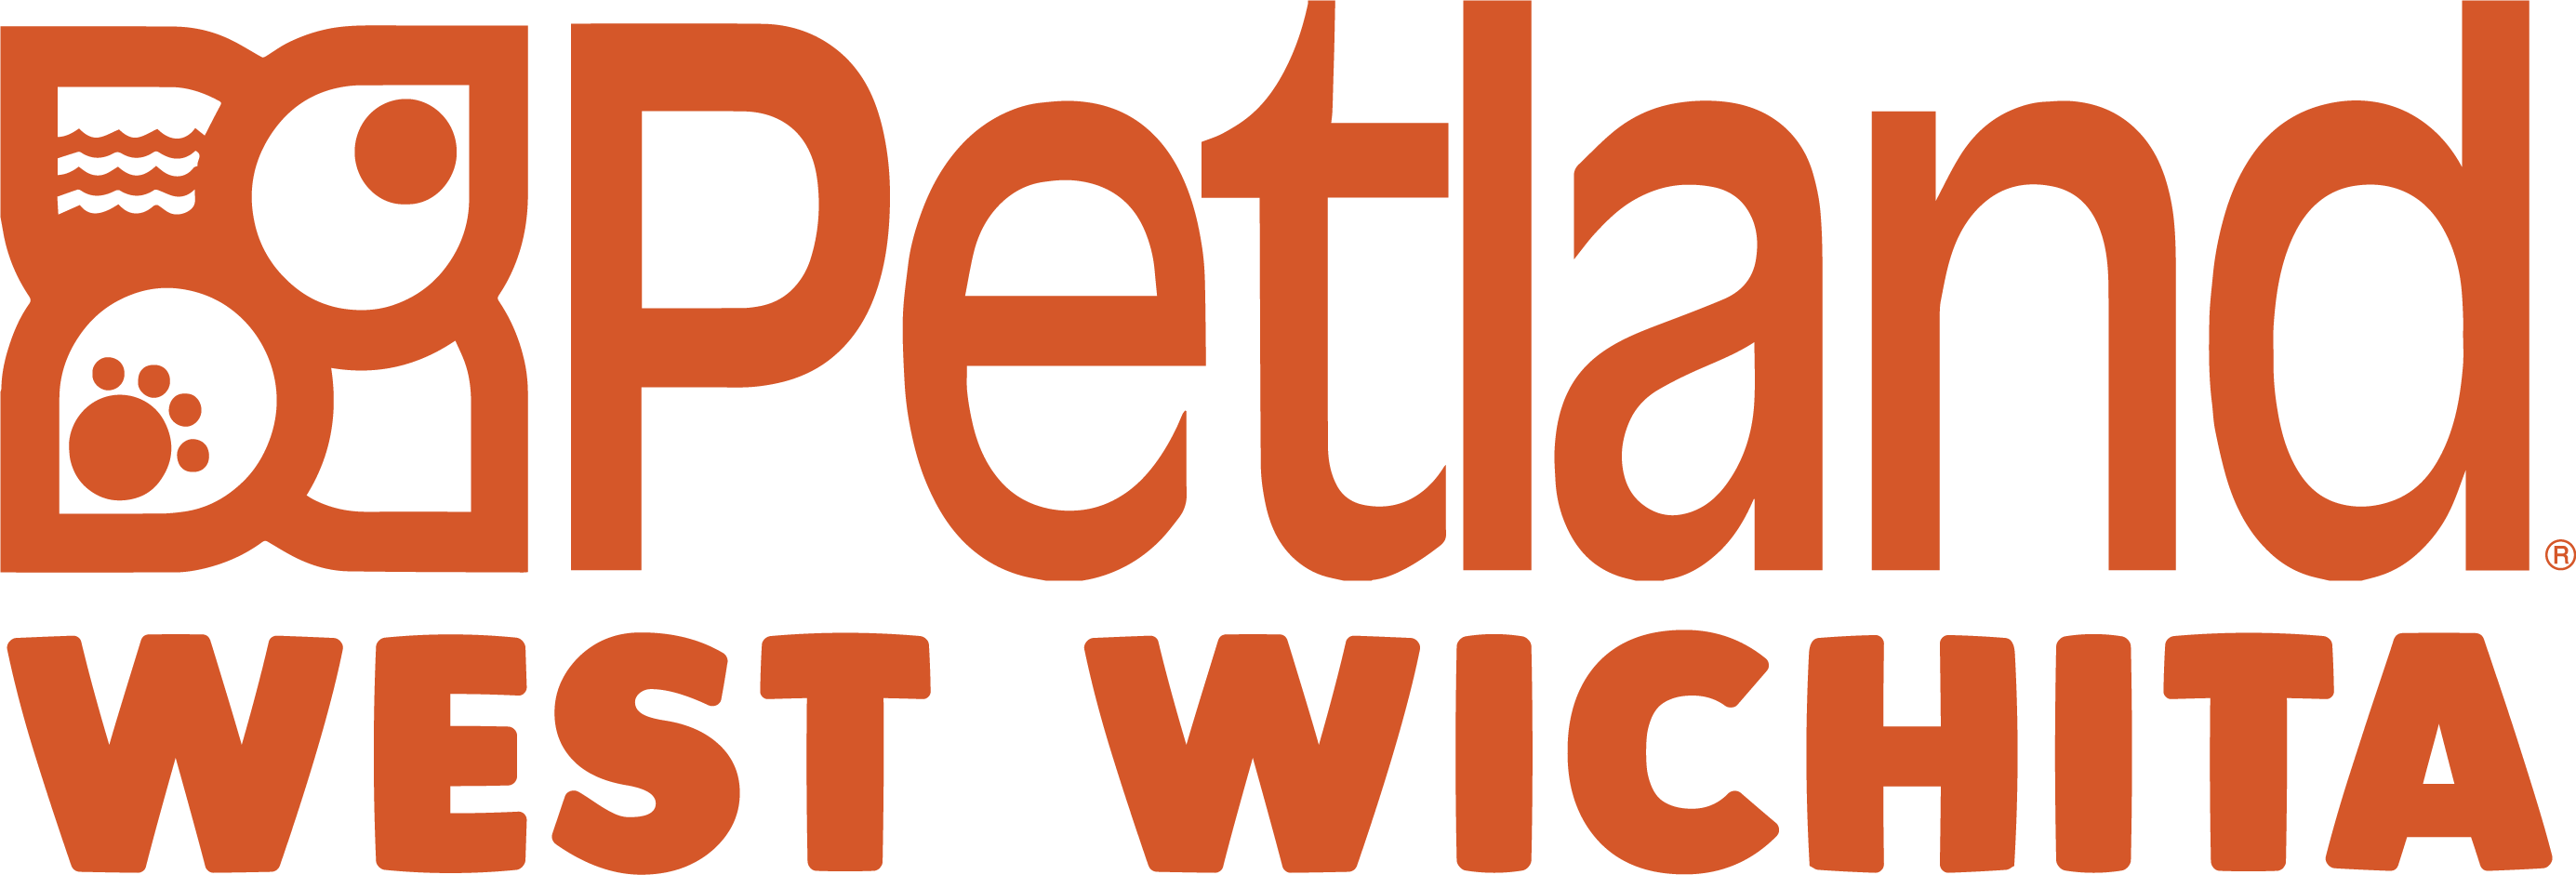 Petland West Wichita